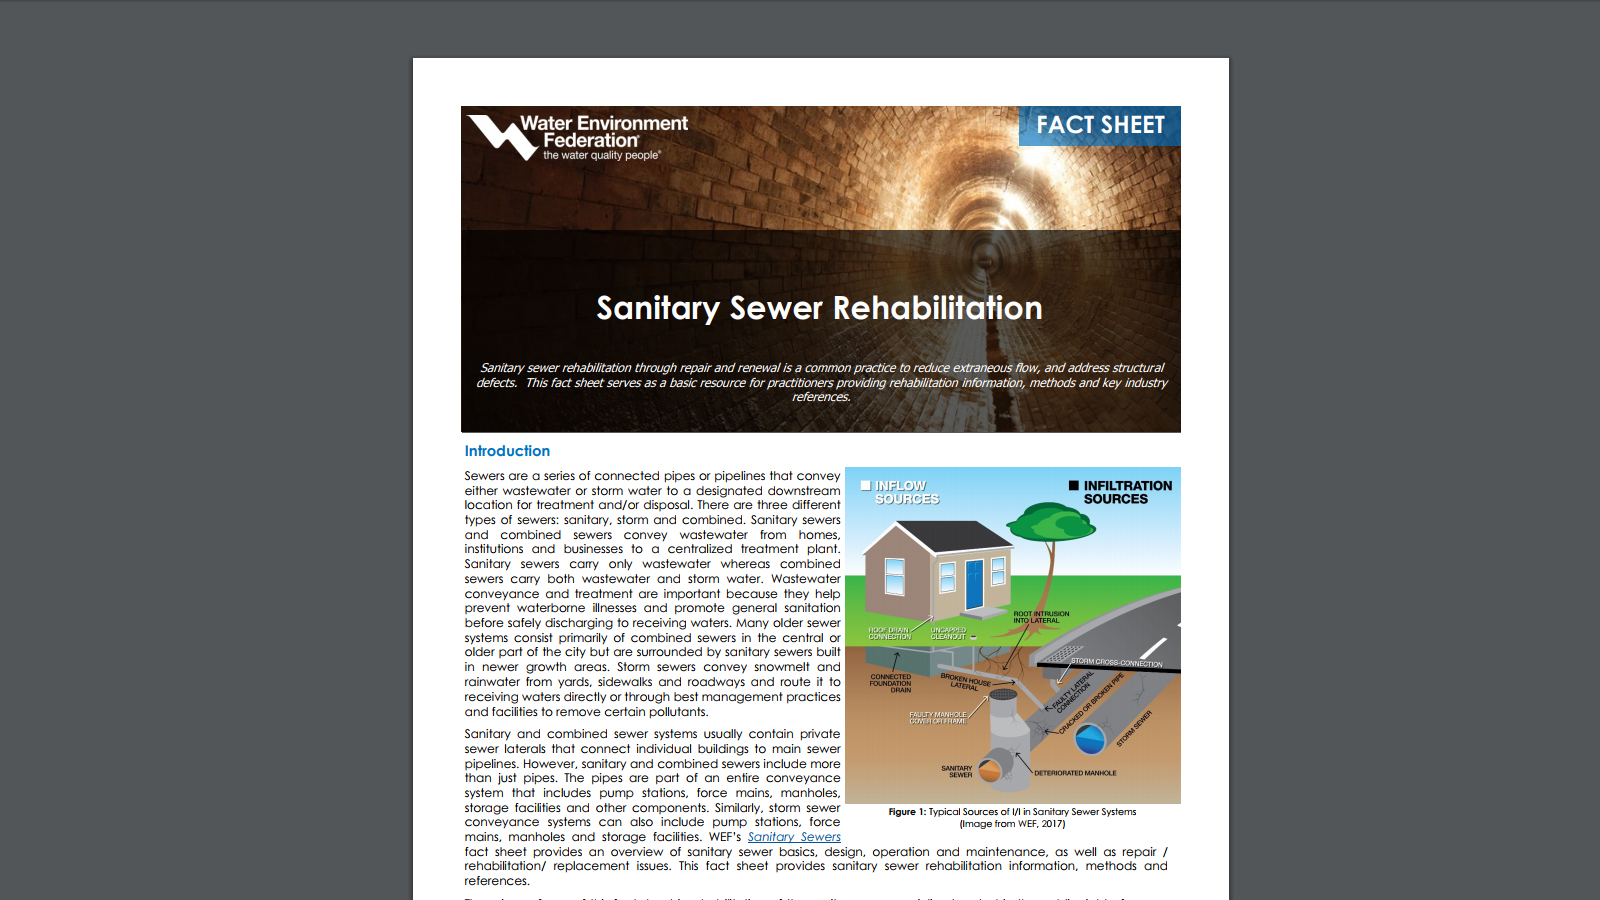 WEF Sanitary Sewer Rehabilitation Fact Sheet